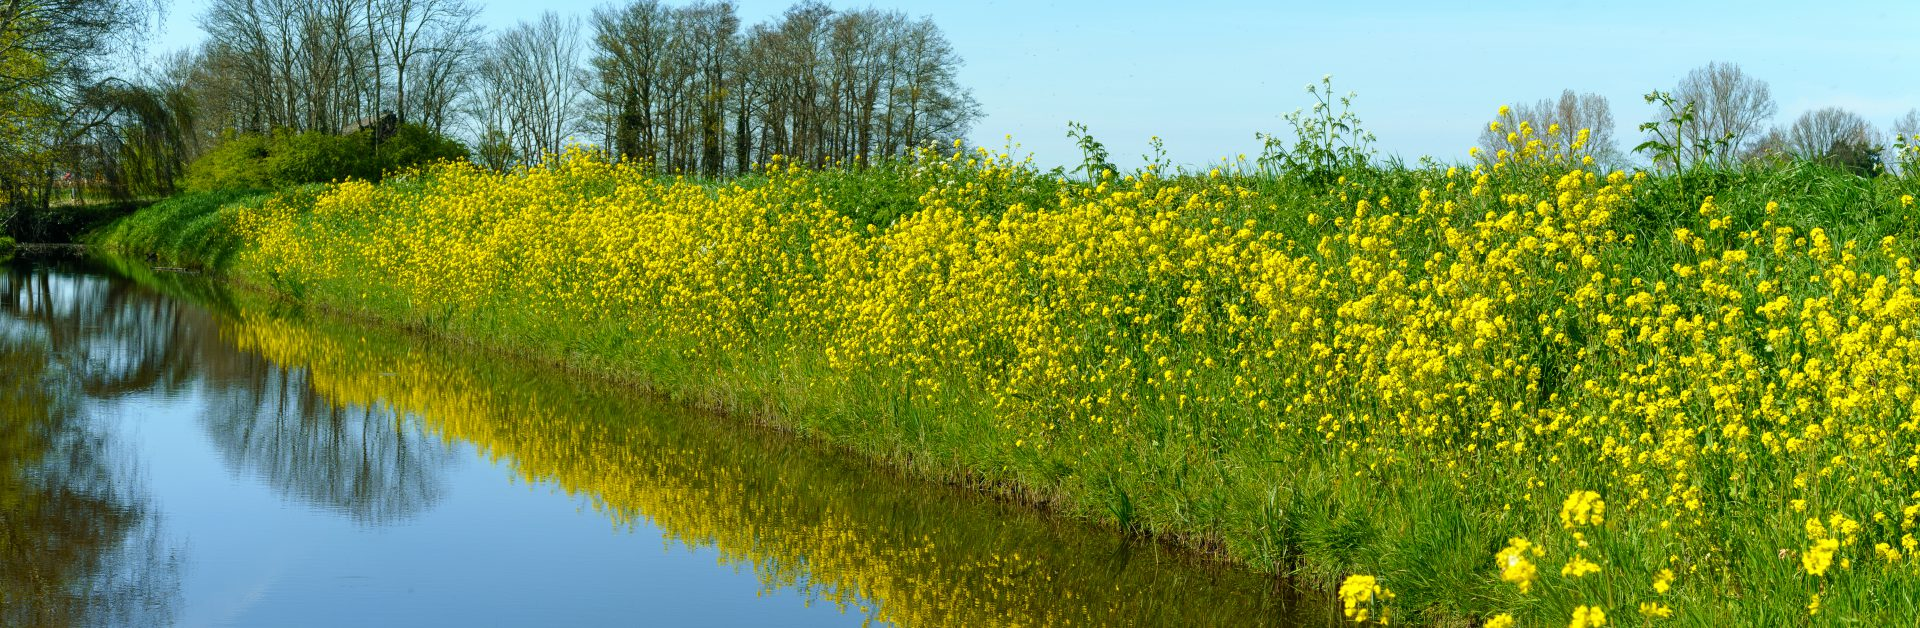 Waterside,View,With,Yellow,Canola,Flowers,In,The,Grass